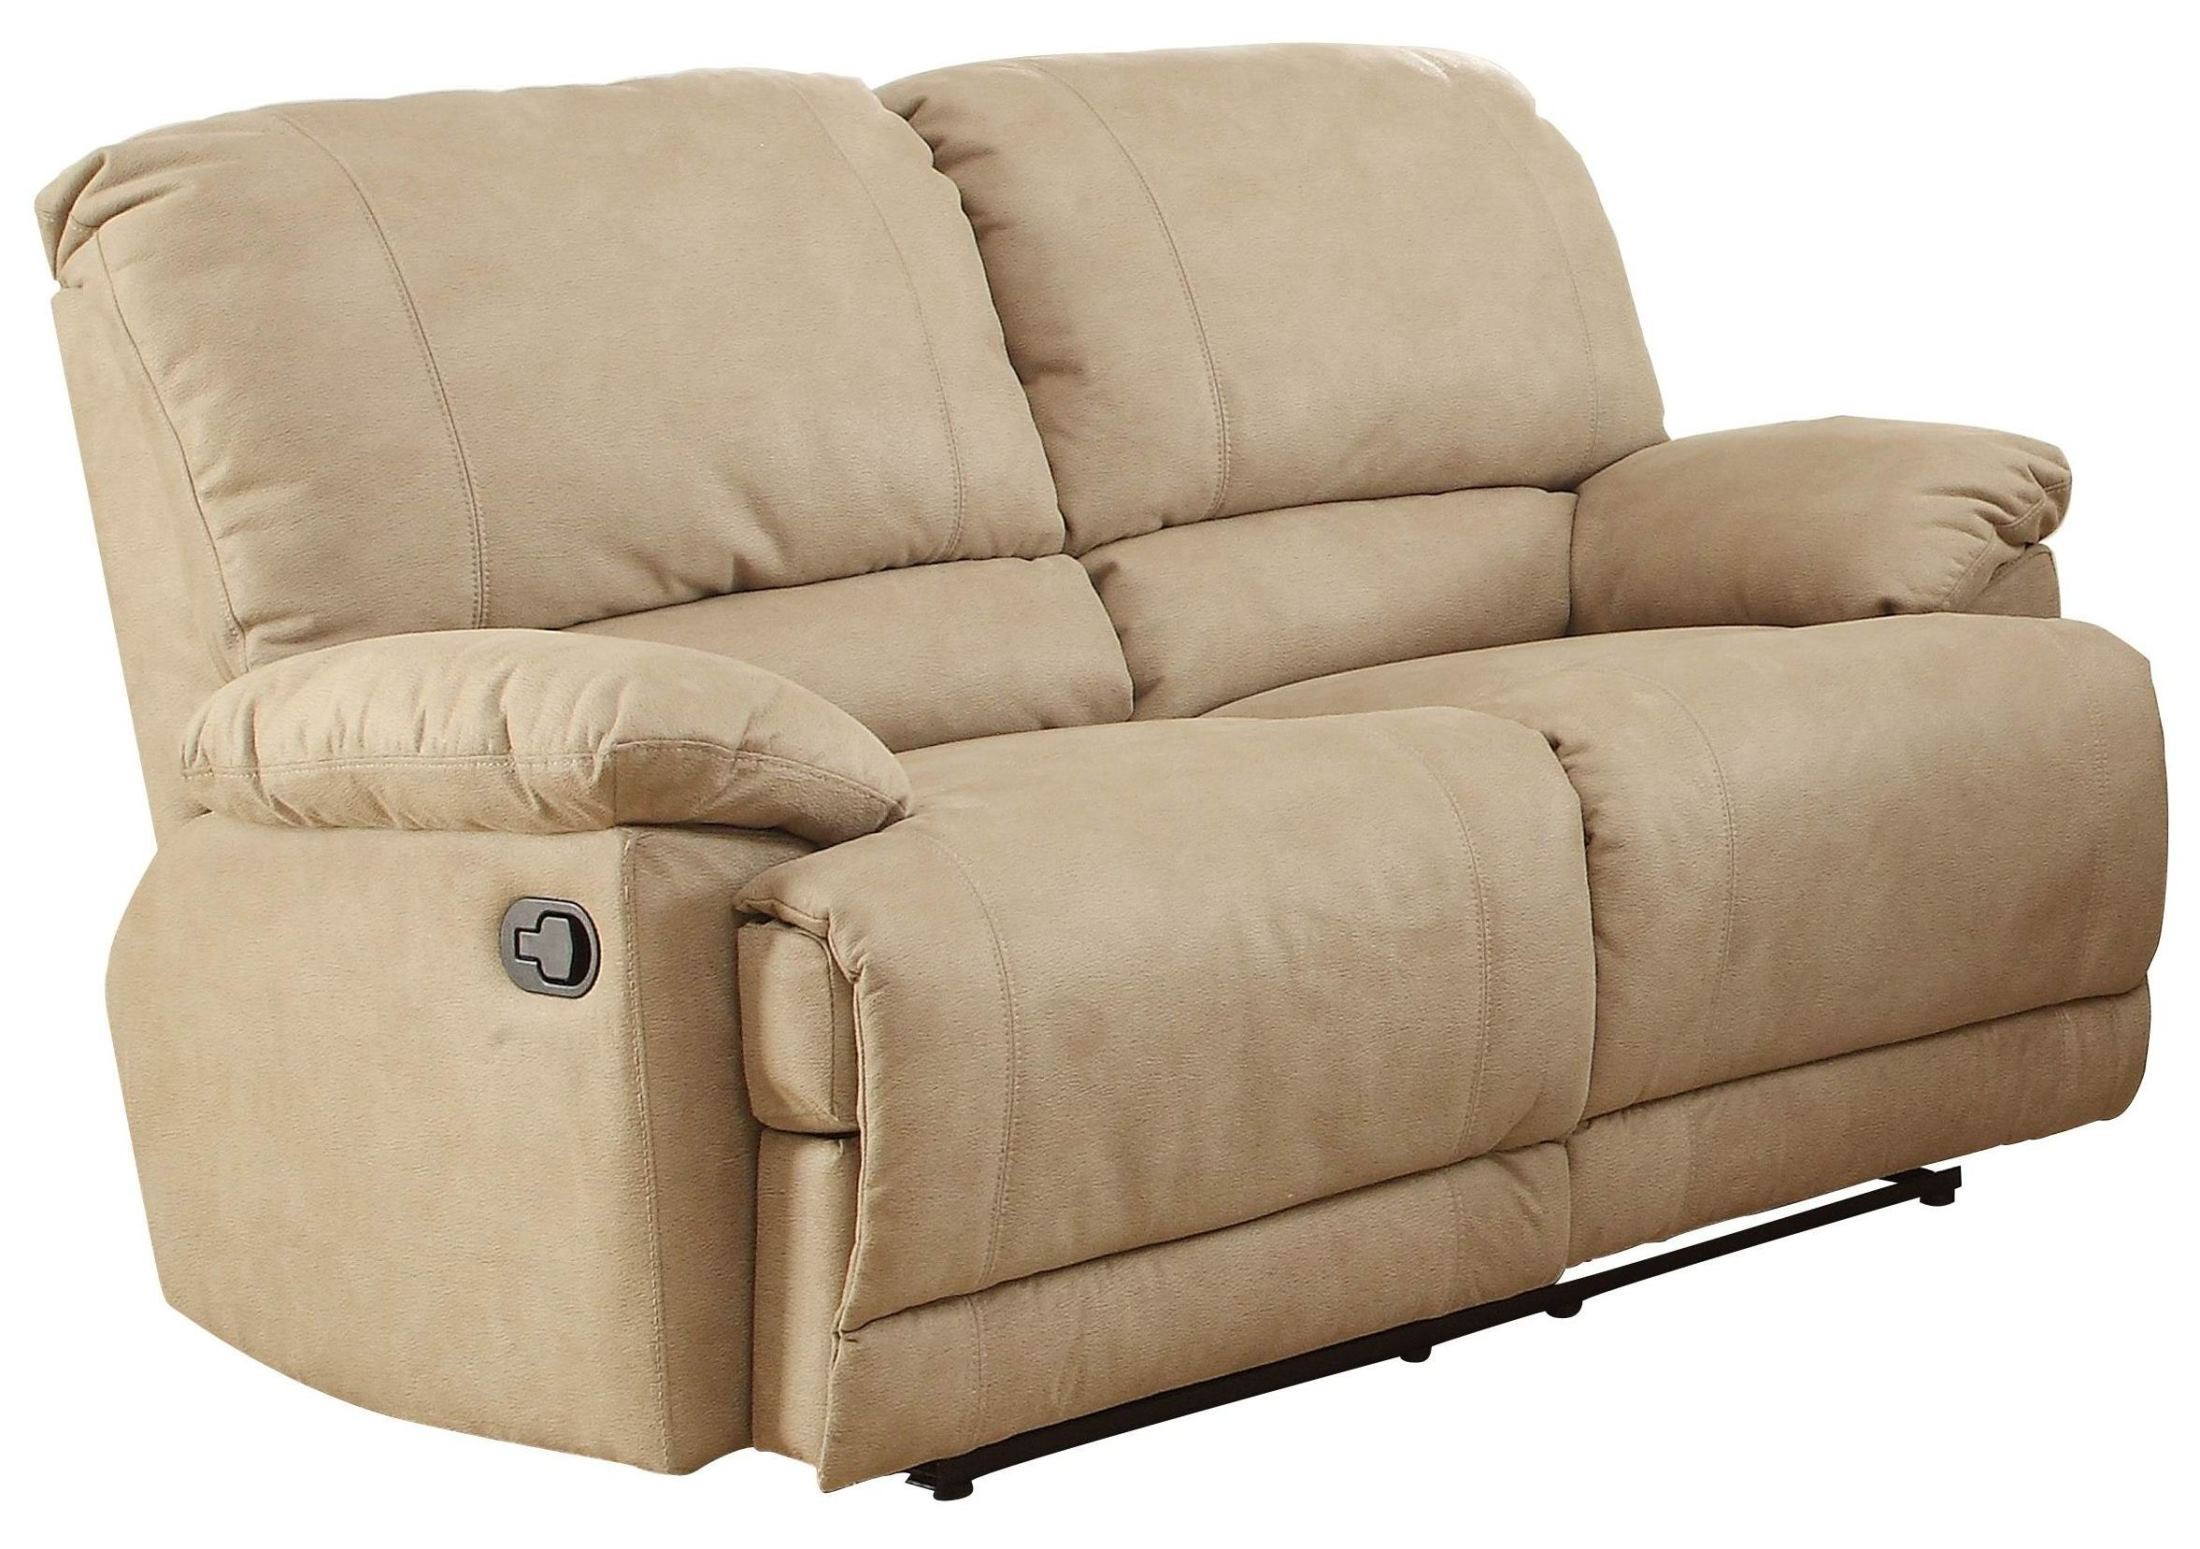 Elsie double reclining loveseat 9713nf 2 homelegance Reclining loveseat sale